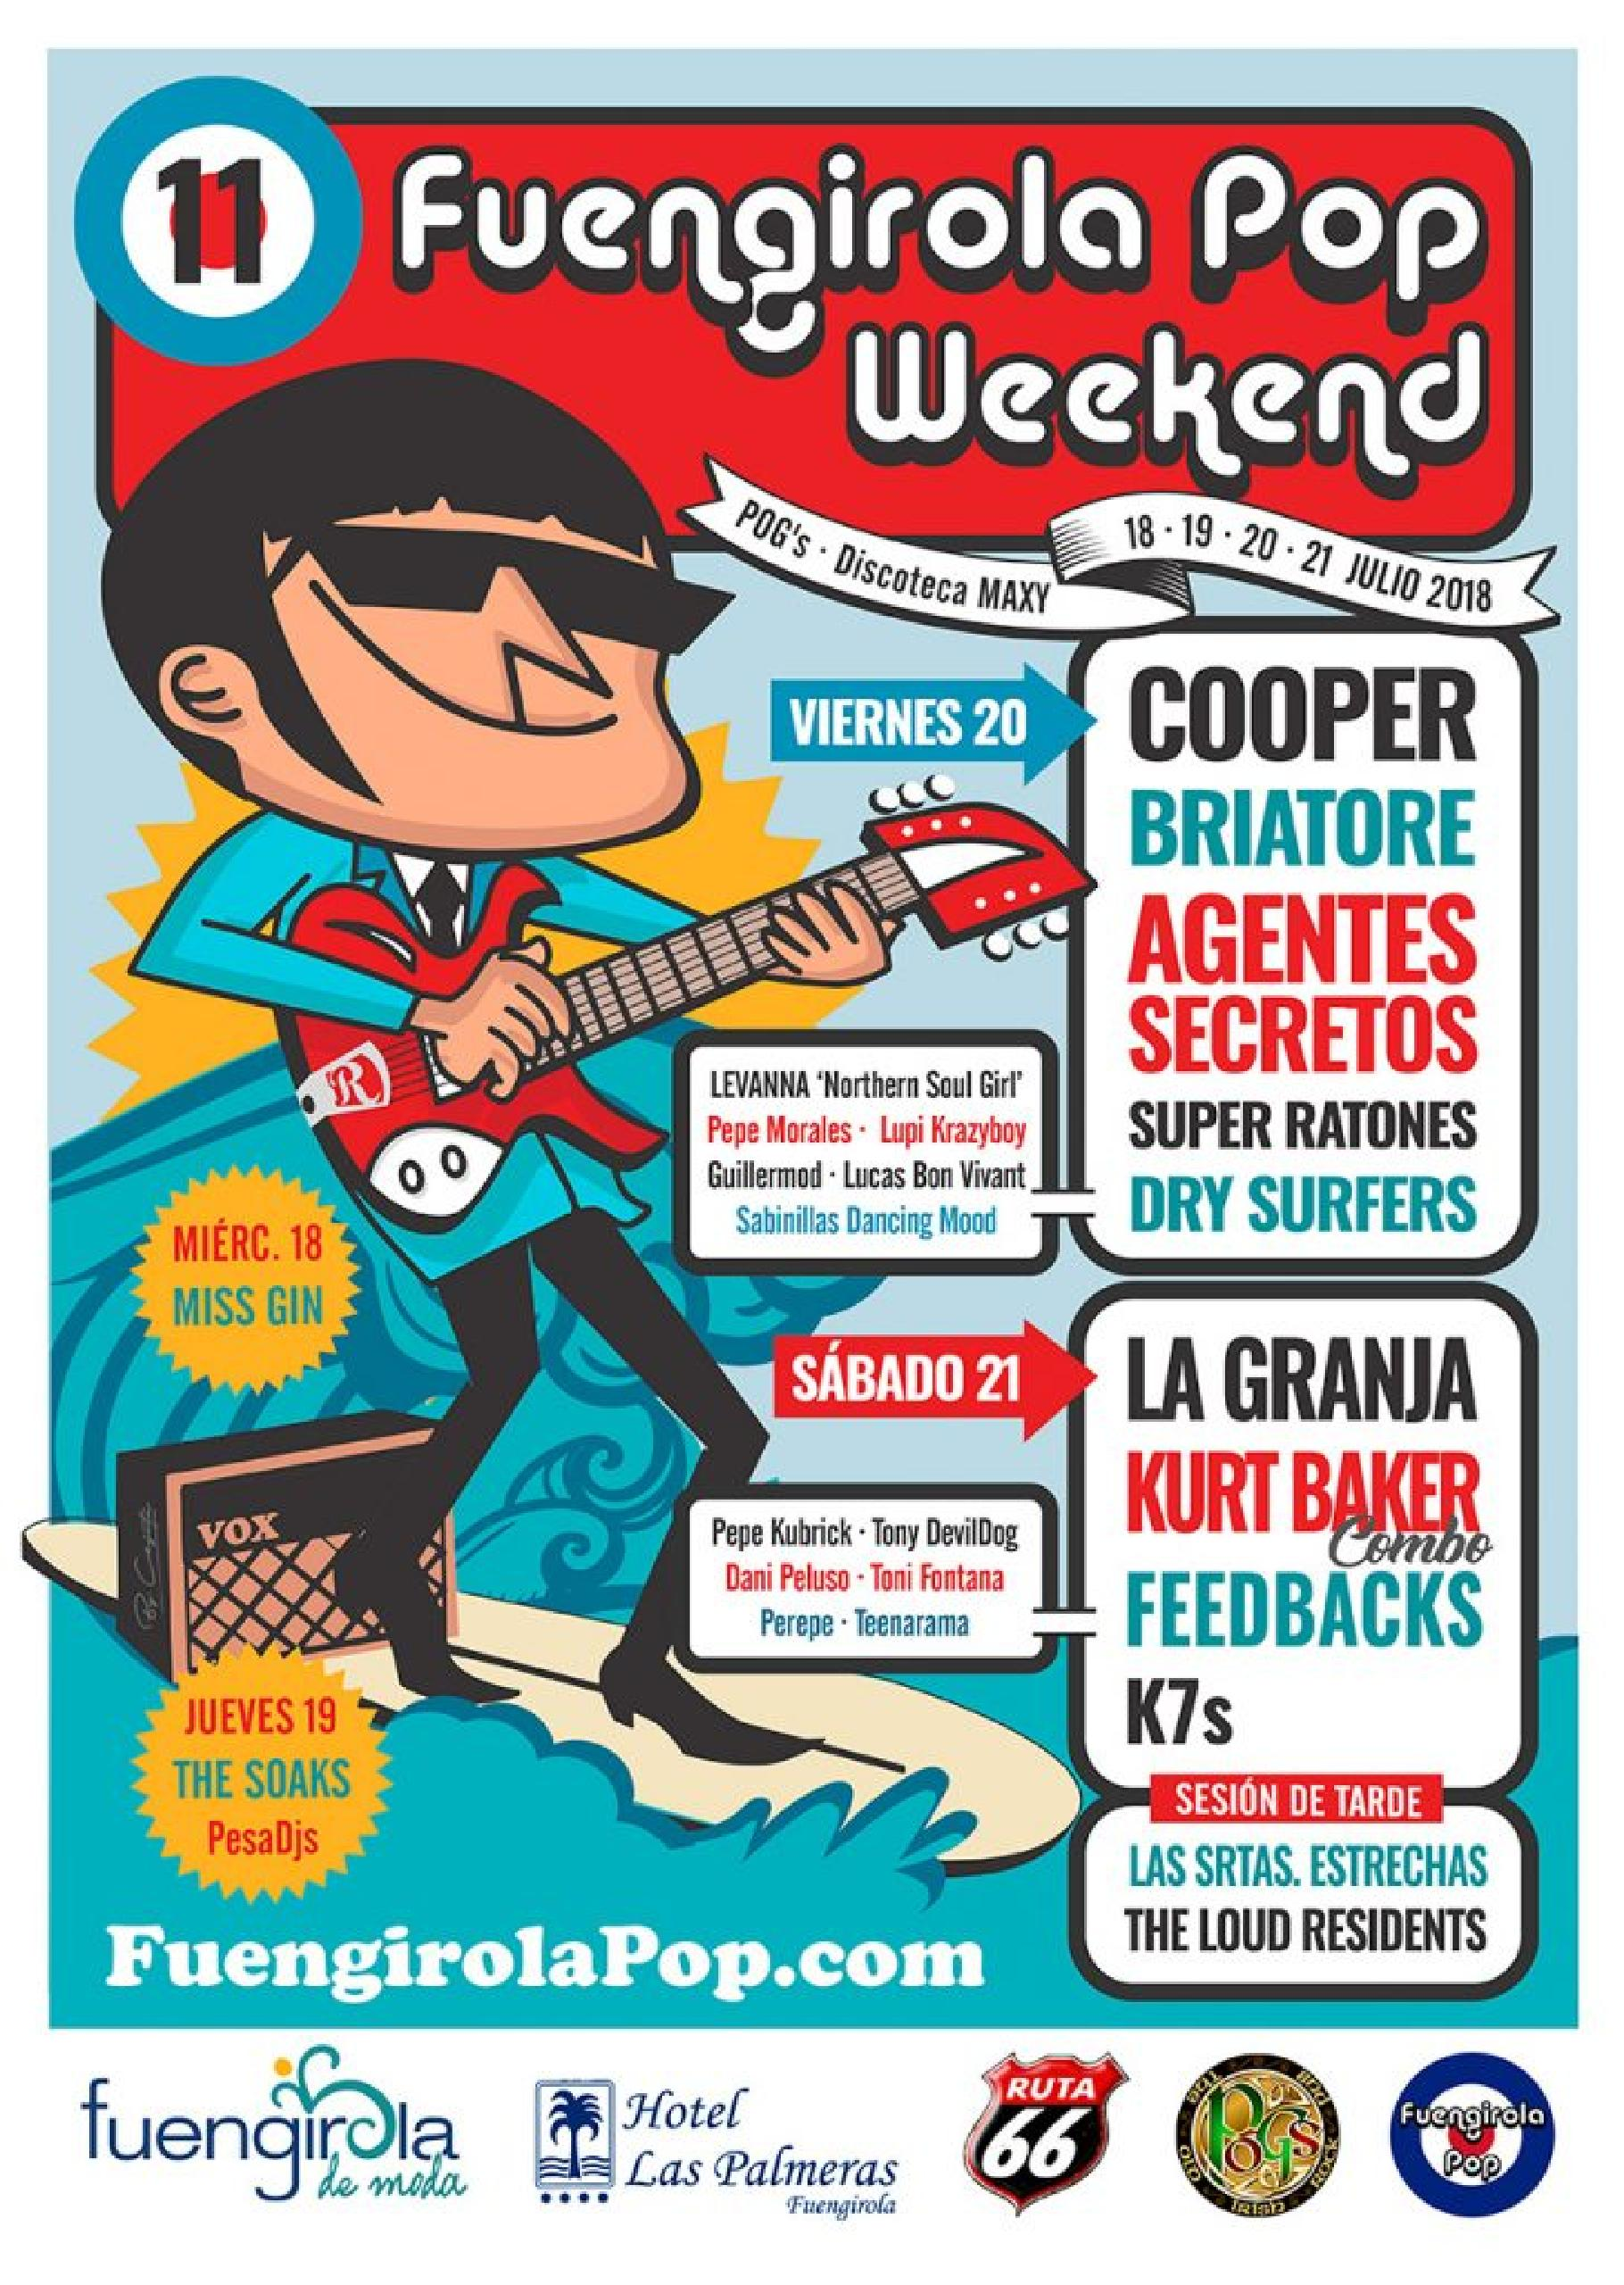 Foto del cartel de Fuengirola Pop Weekend 2018